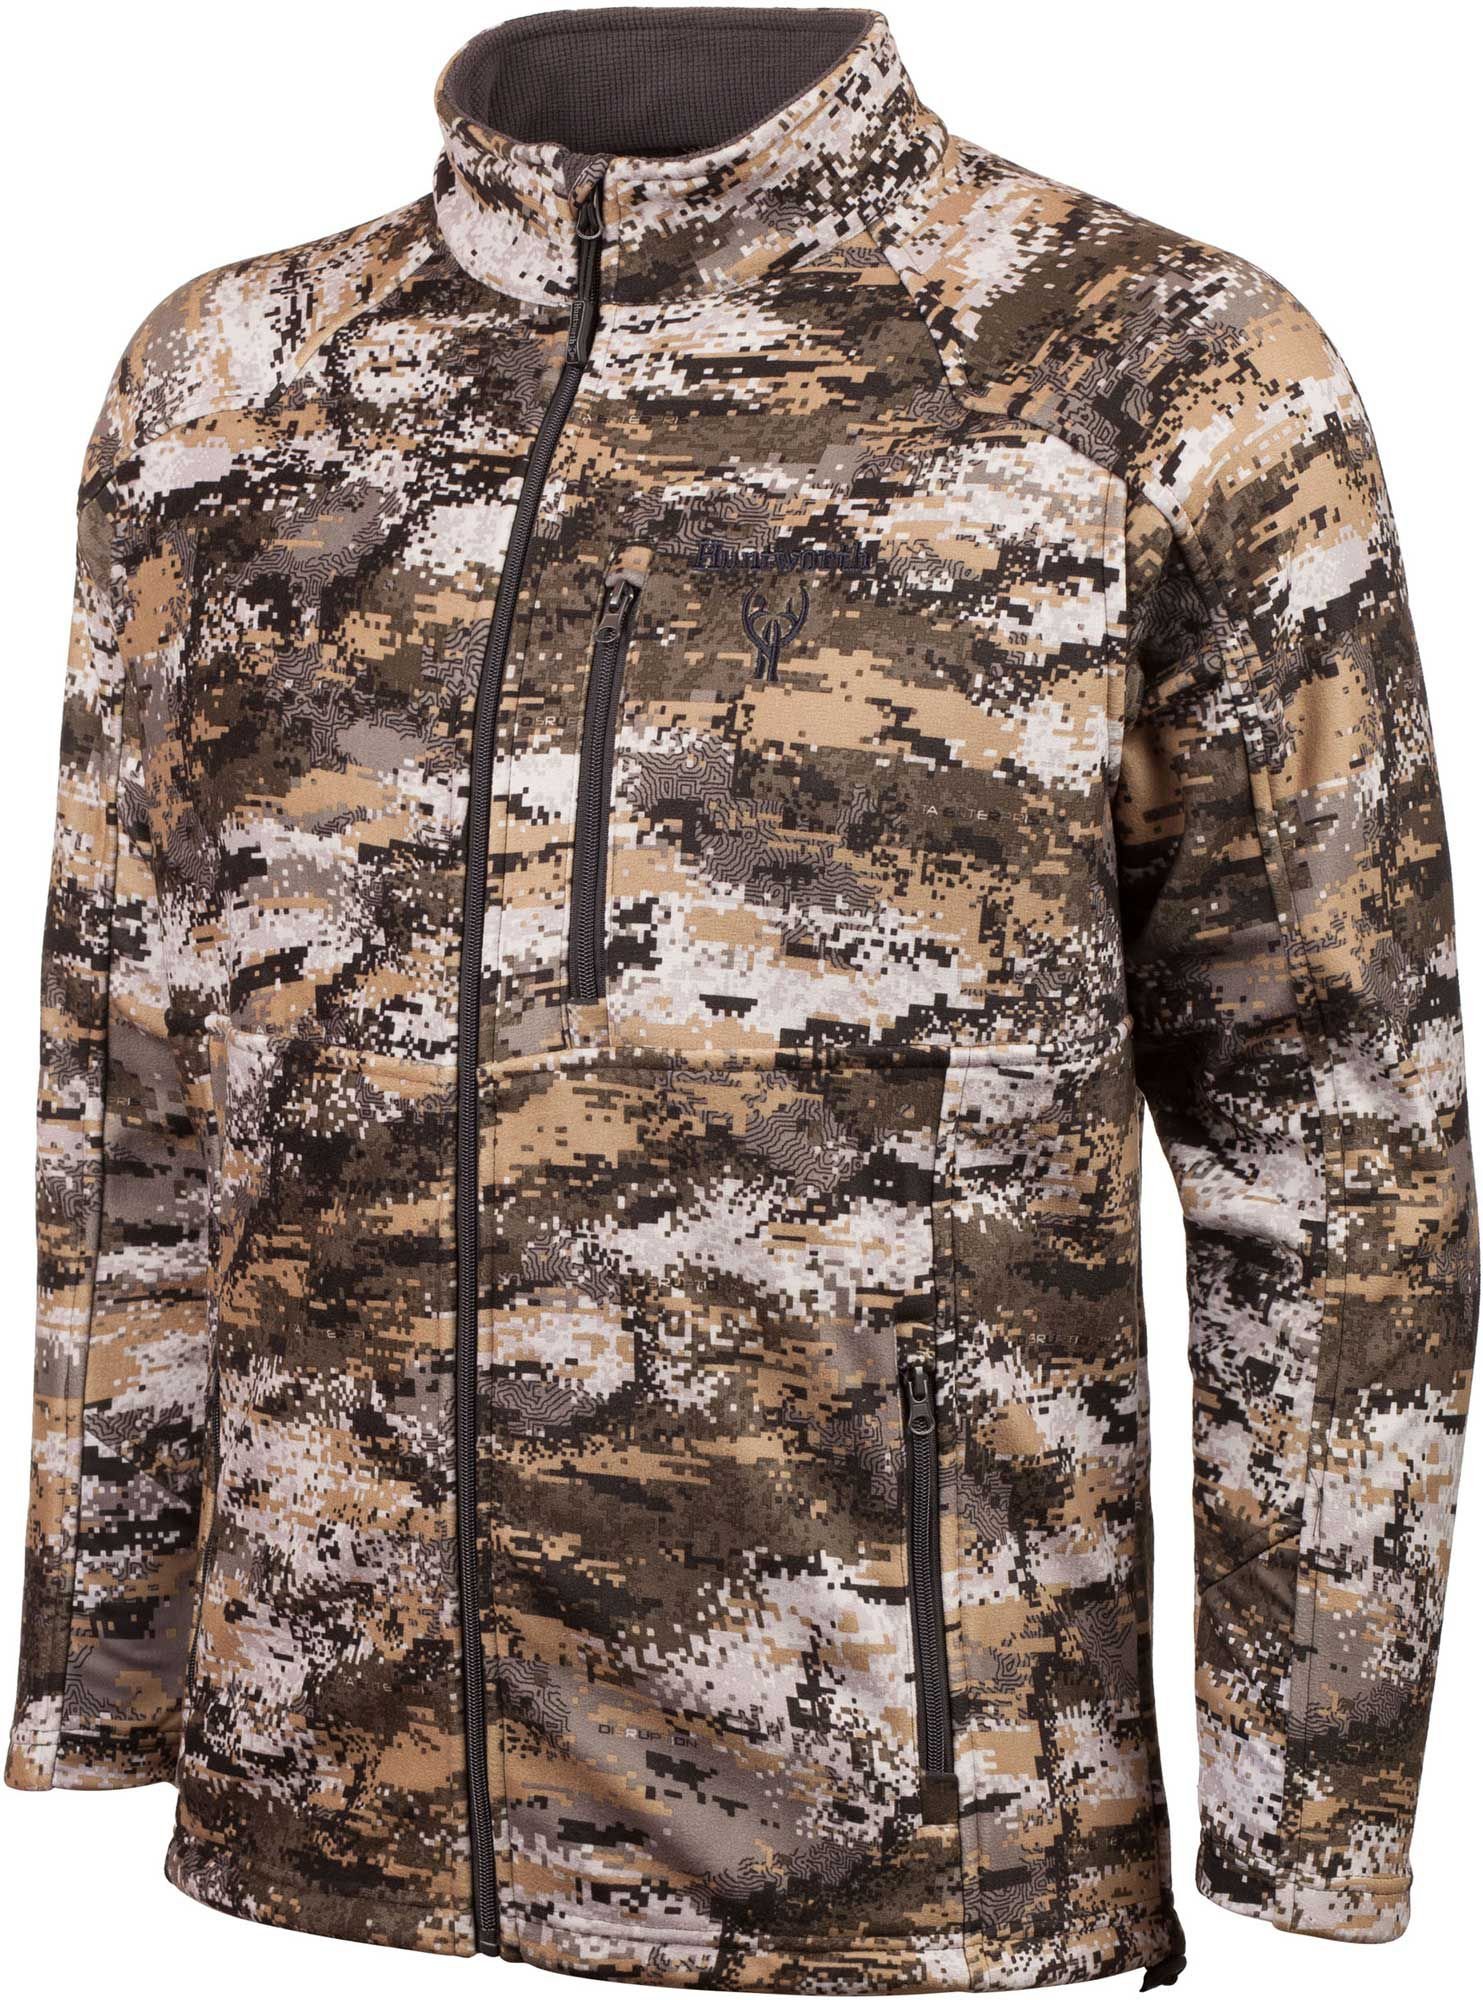 Huntworth Men's Mid Weight Hunting Jacket, Size: Medium, Disruption